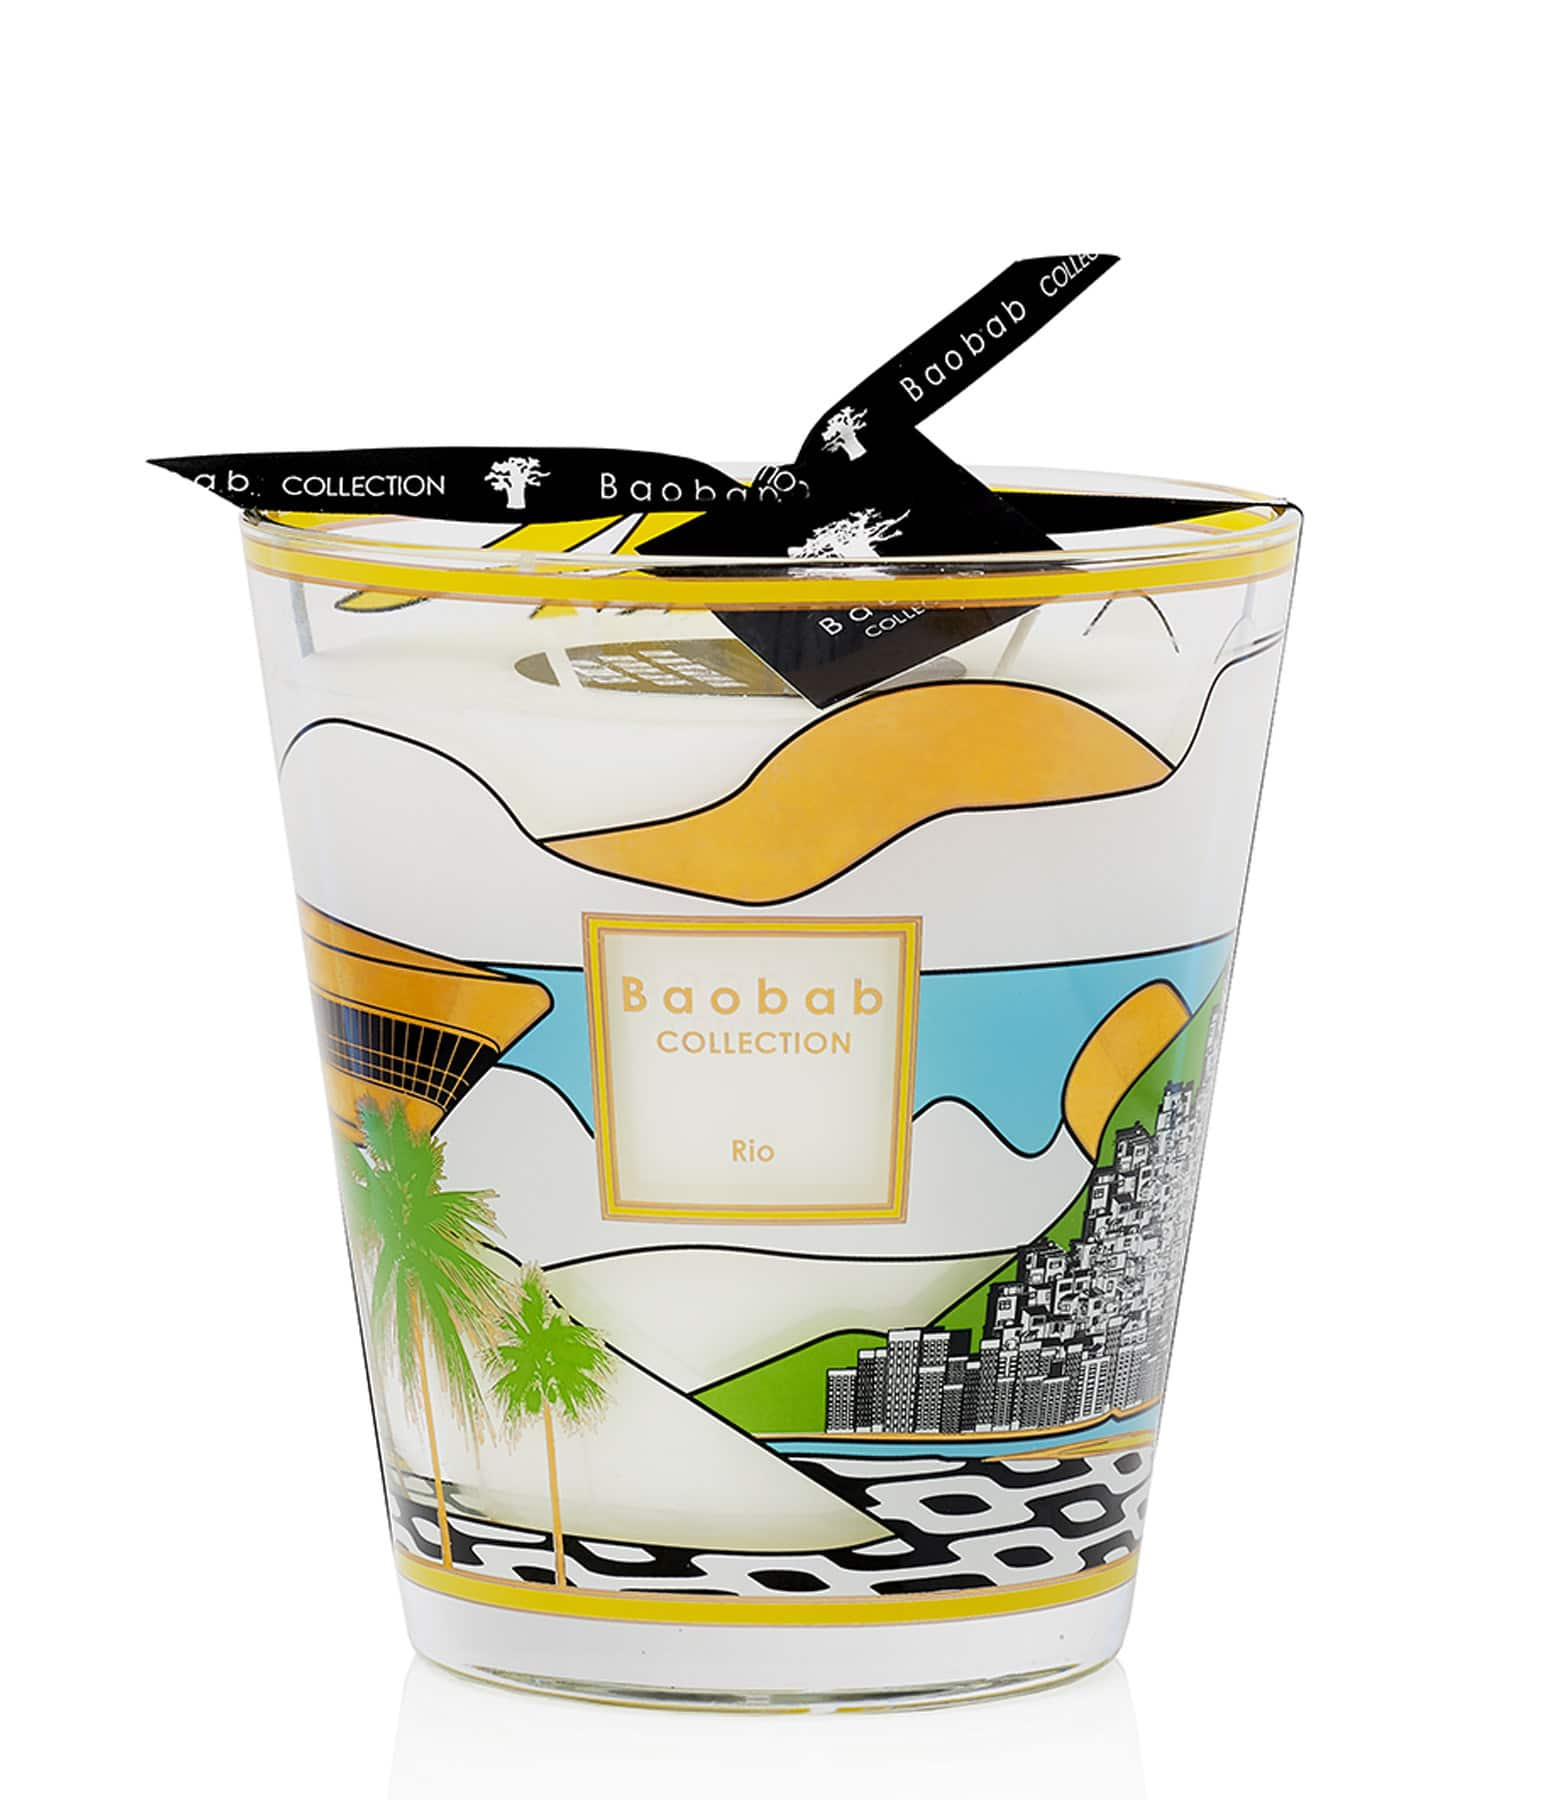 BAOBAB COLLECTION - Bougie Max 16 Cities Rio